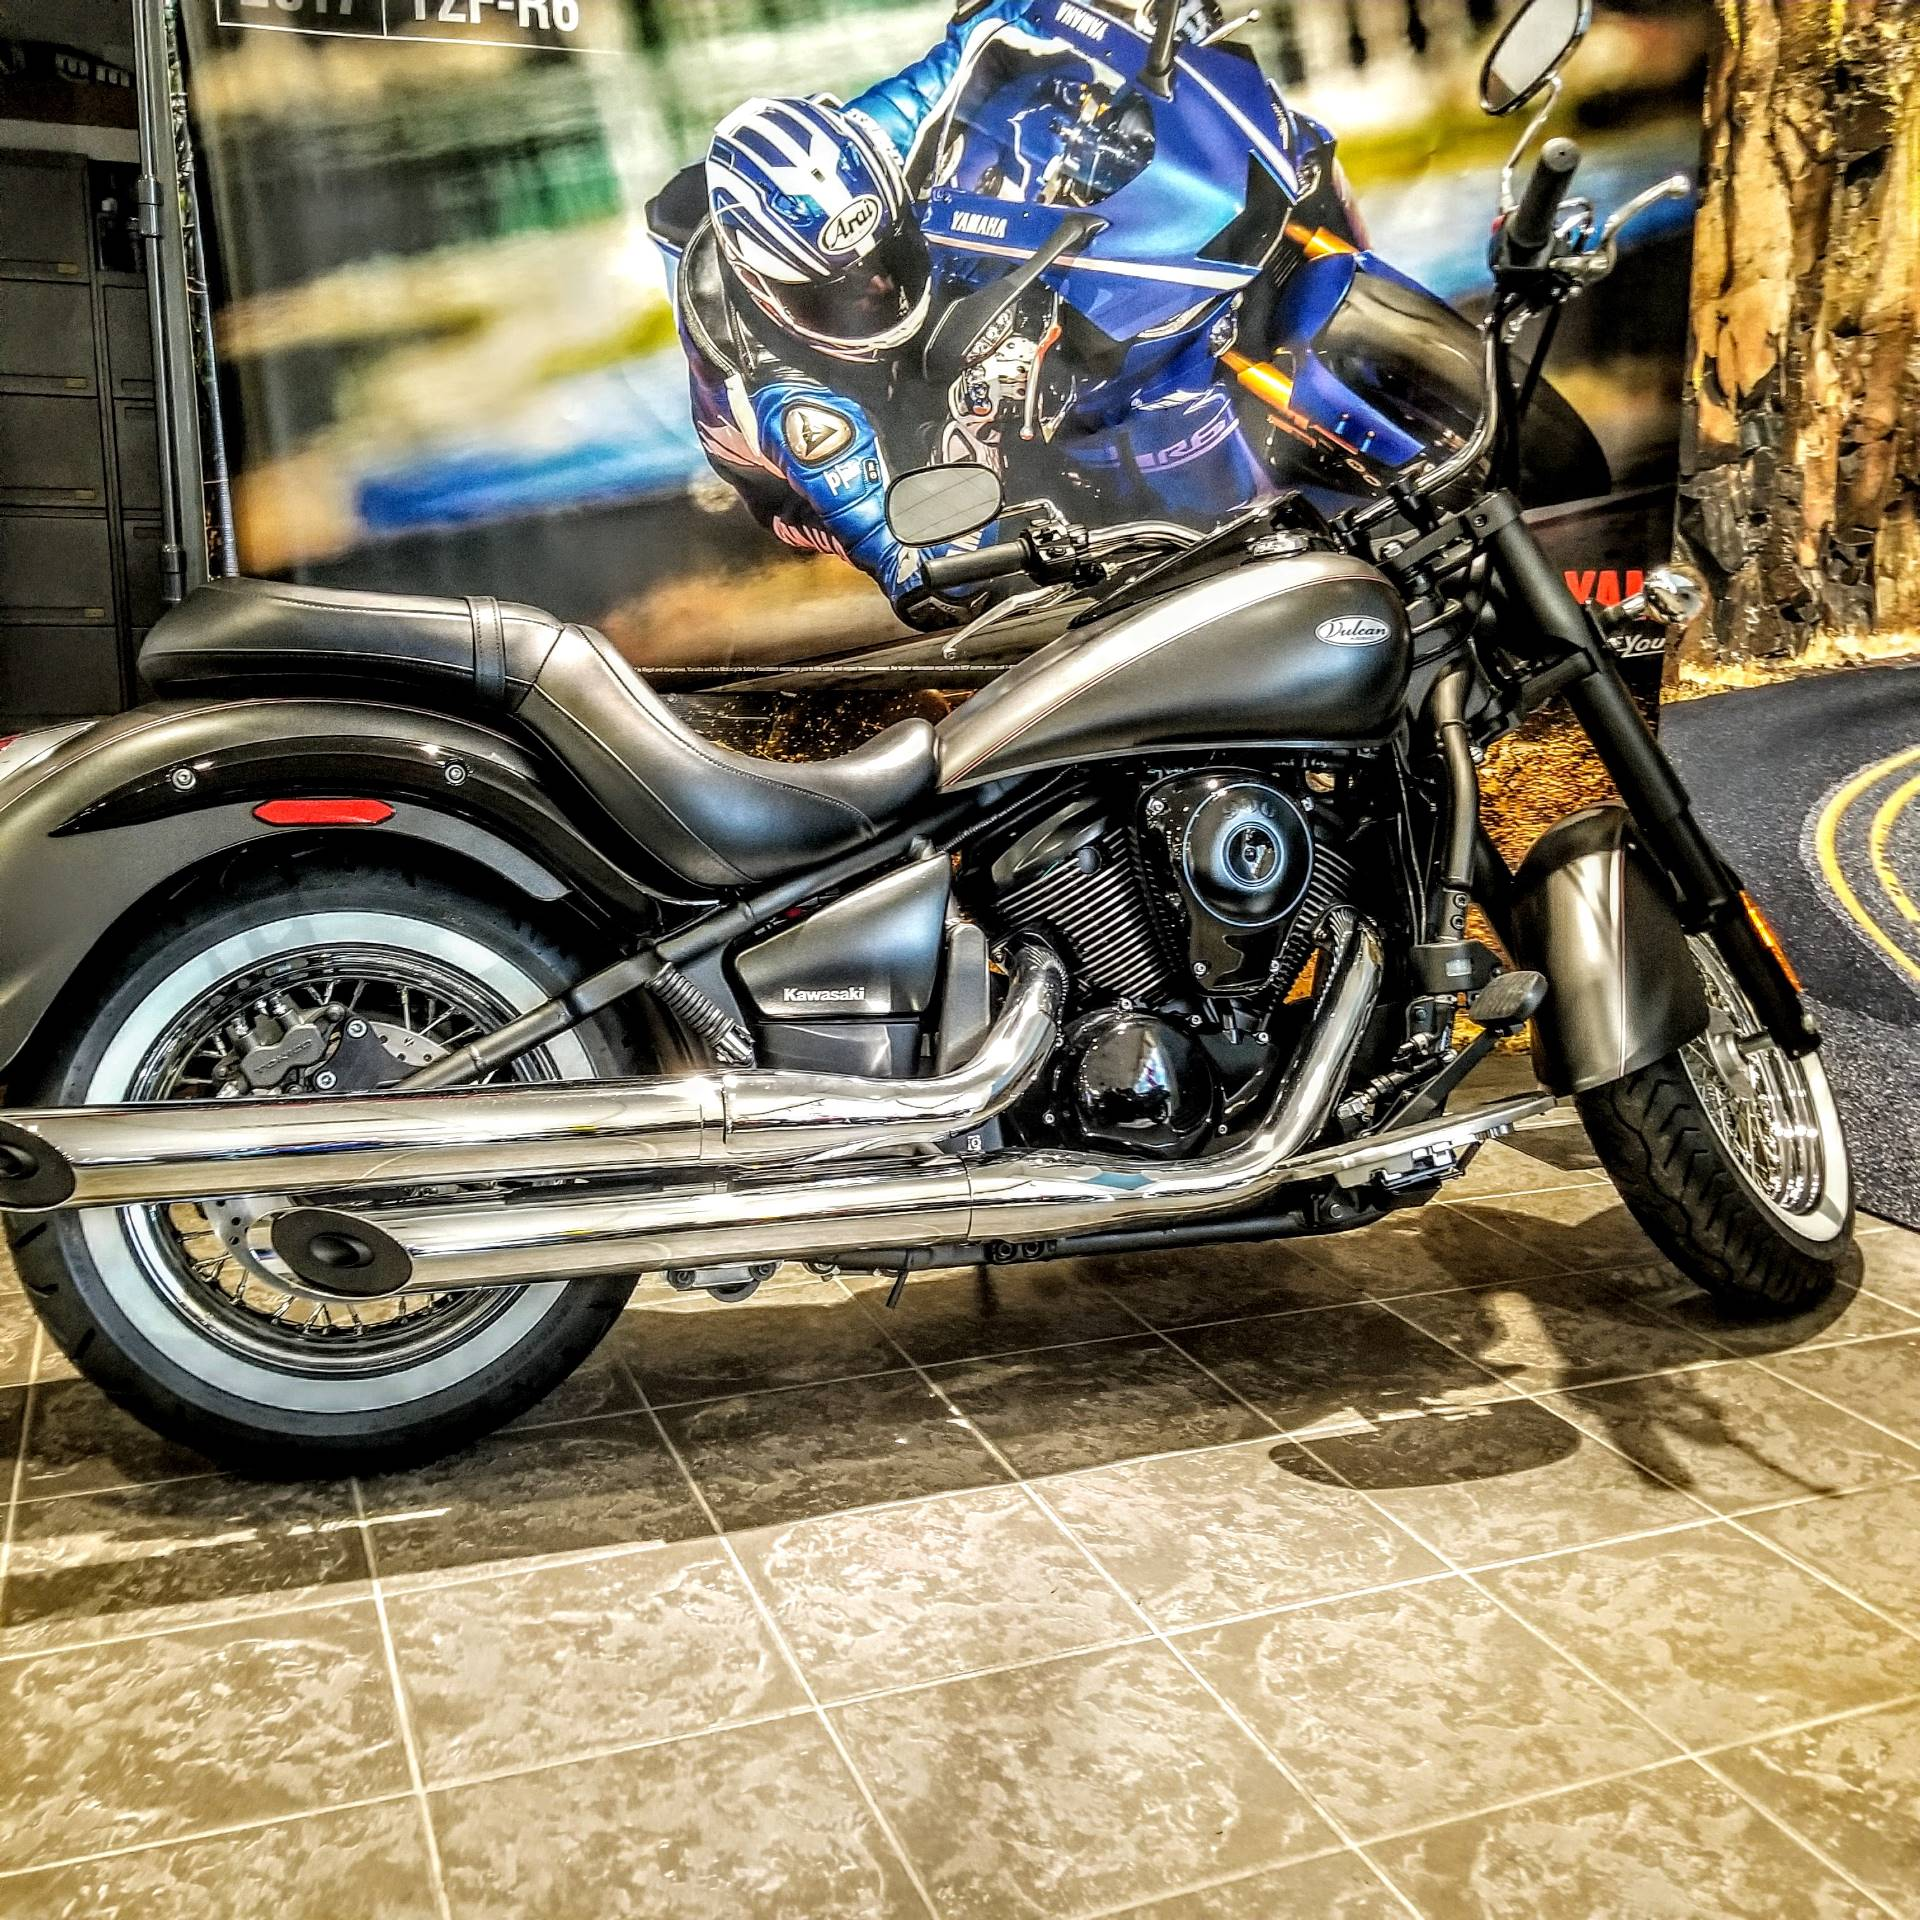 2018 Kawasaki Vulcan 900 Classic in Hickory, North Carolina - Photo 6